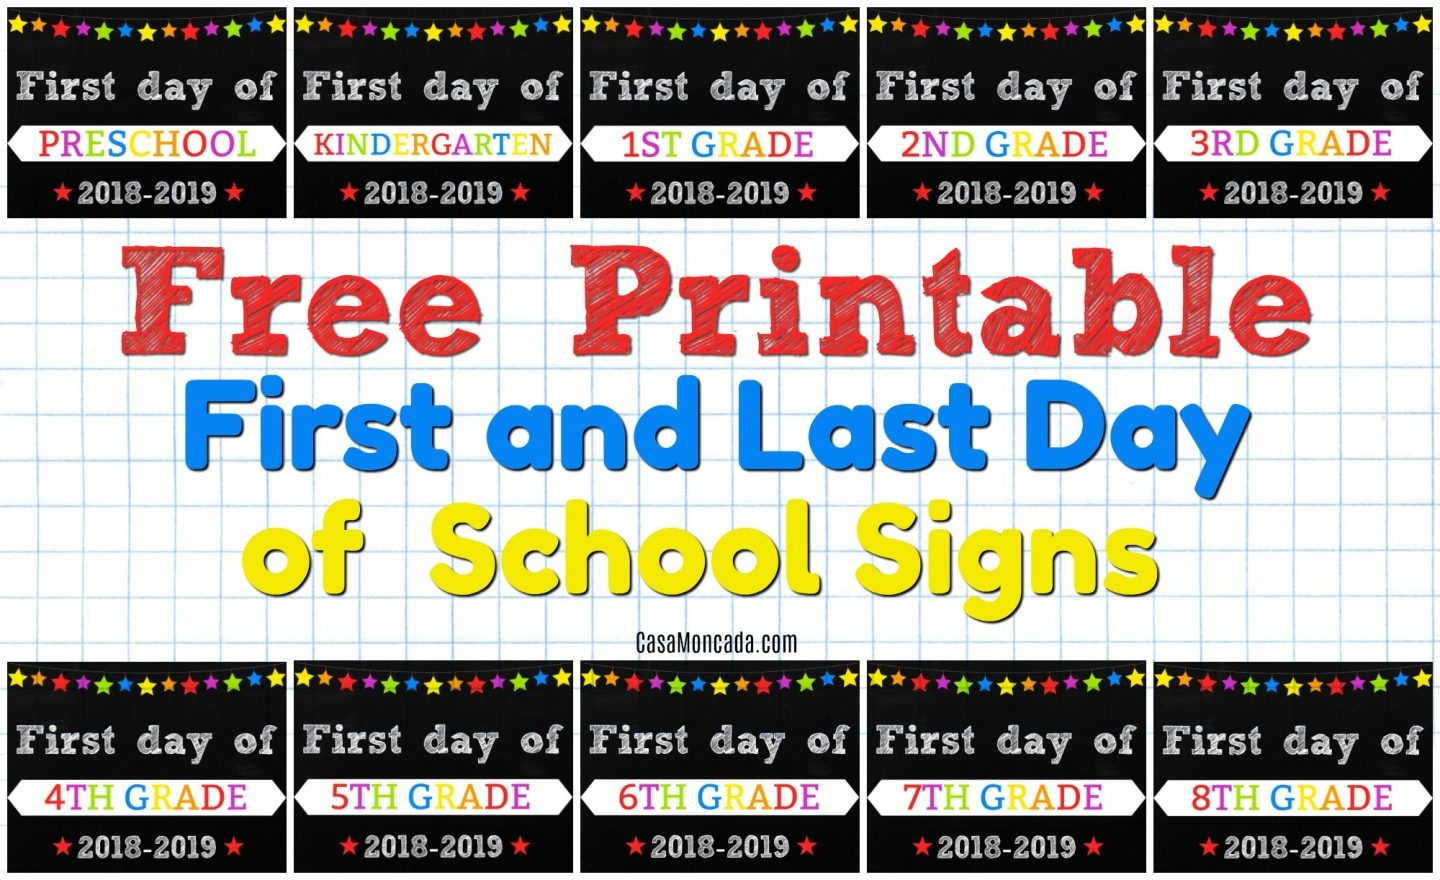 Free Printable First And Last Day Of School Signs - Casa Moncada - Free Printable Back To School Signs 2017